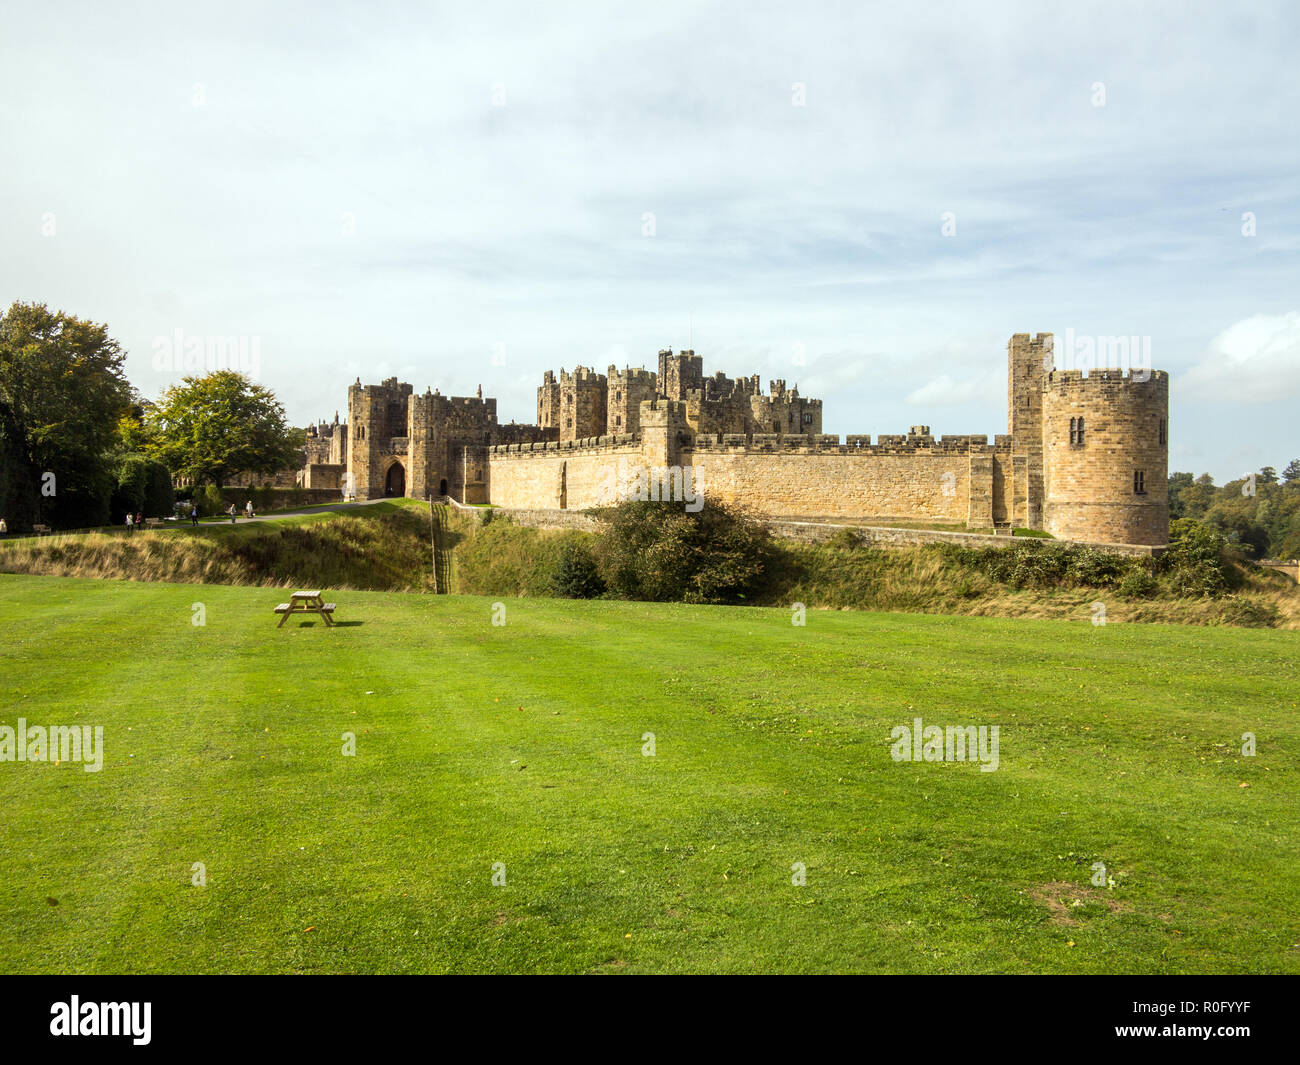 Alnwick castle and grounds seat of the Percy family and ancestral home to the Duke of Northumberland in the Northumberland countryside England UK - Stock Image